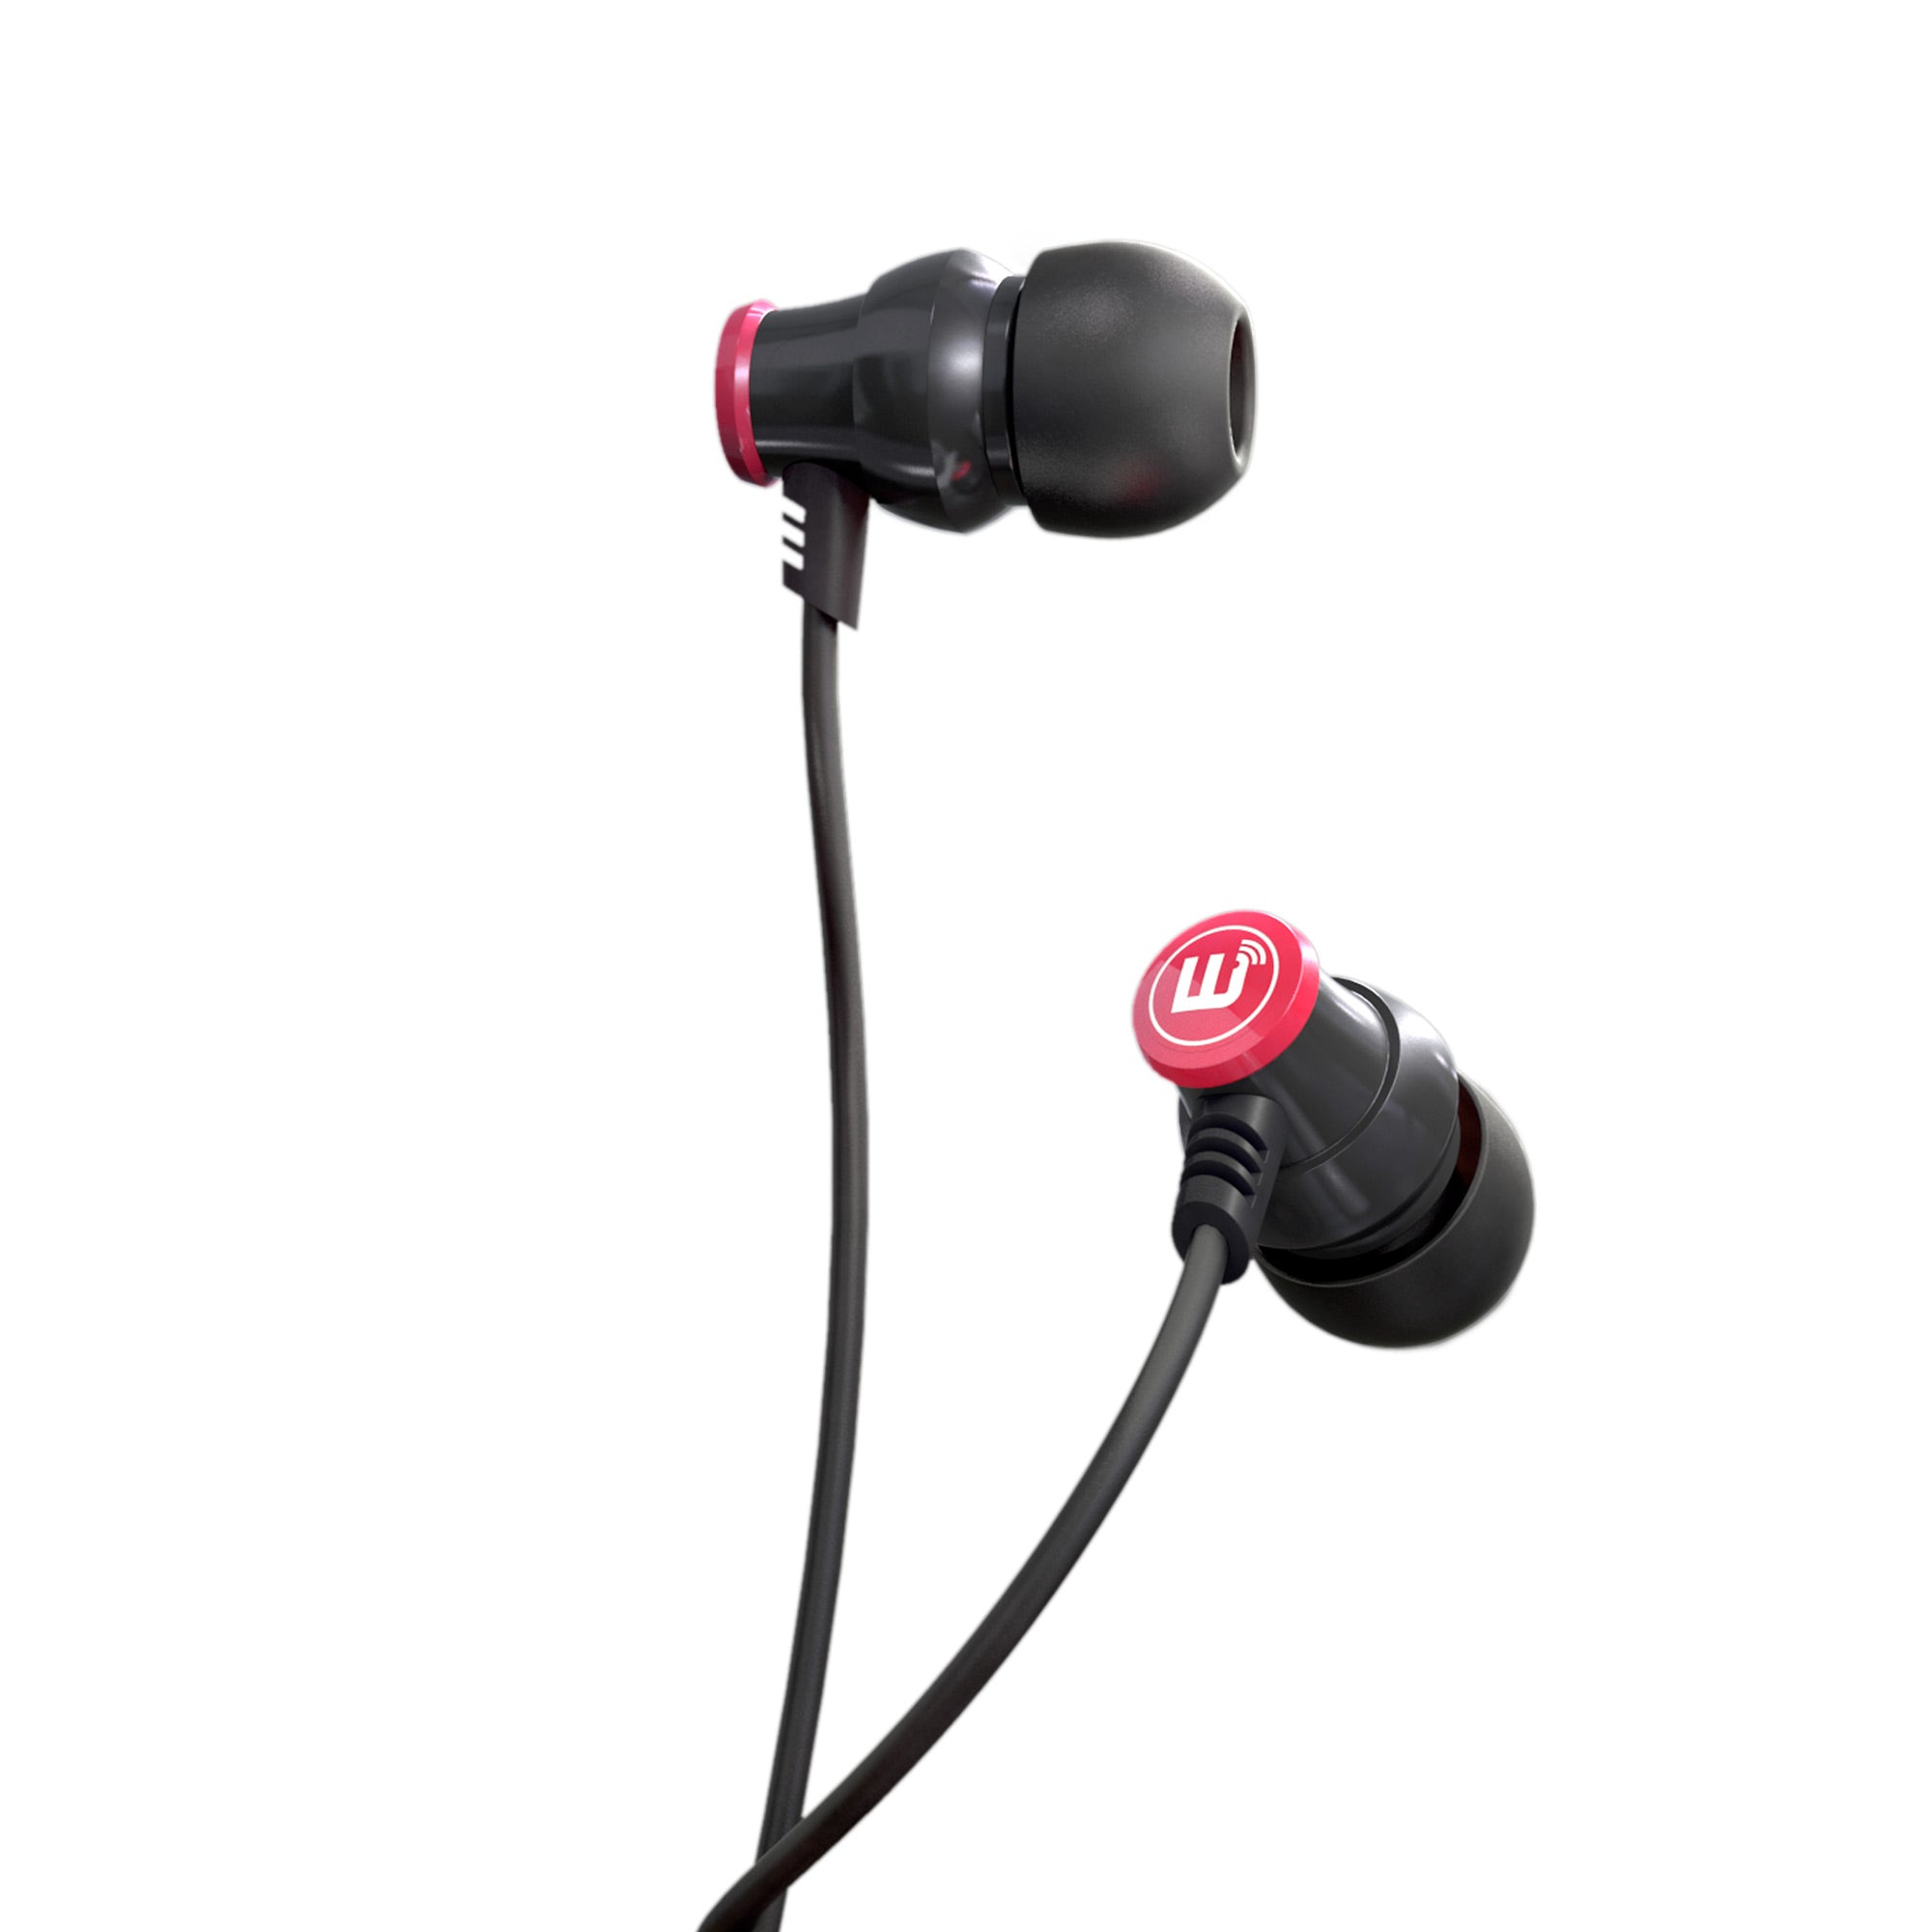 Delta IEM Earphones With Mic / Remote